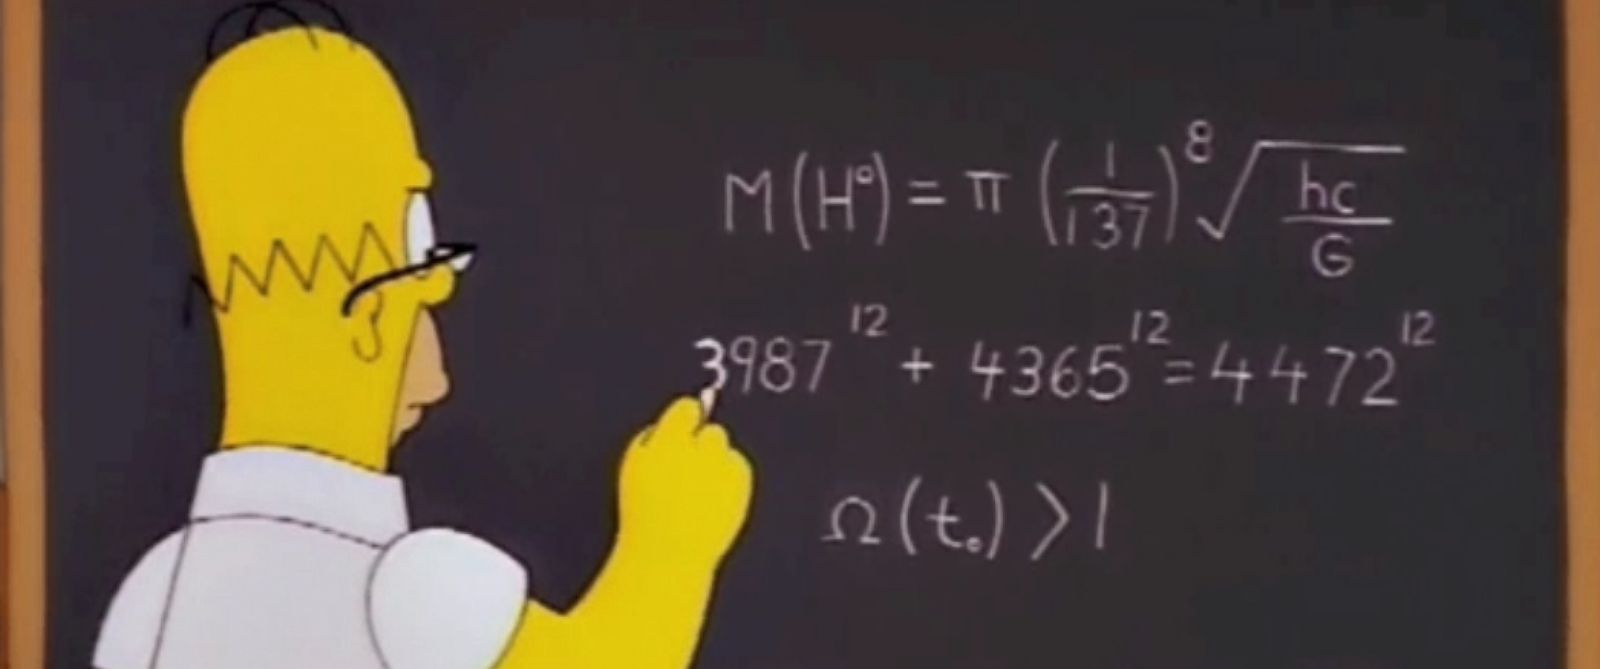 """PHOTO: Homer Simpson appears to predict the mass of the Higgs boson particle in a grab made from a 1998 episode of """"The Simpsons."""""""